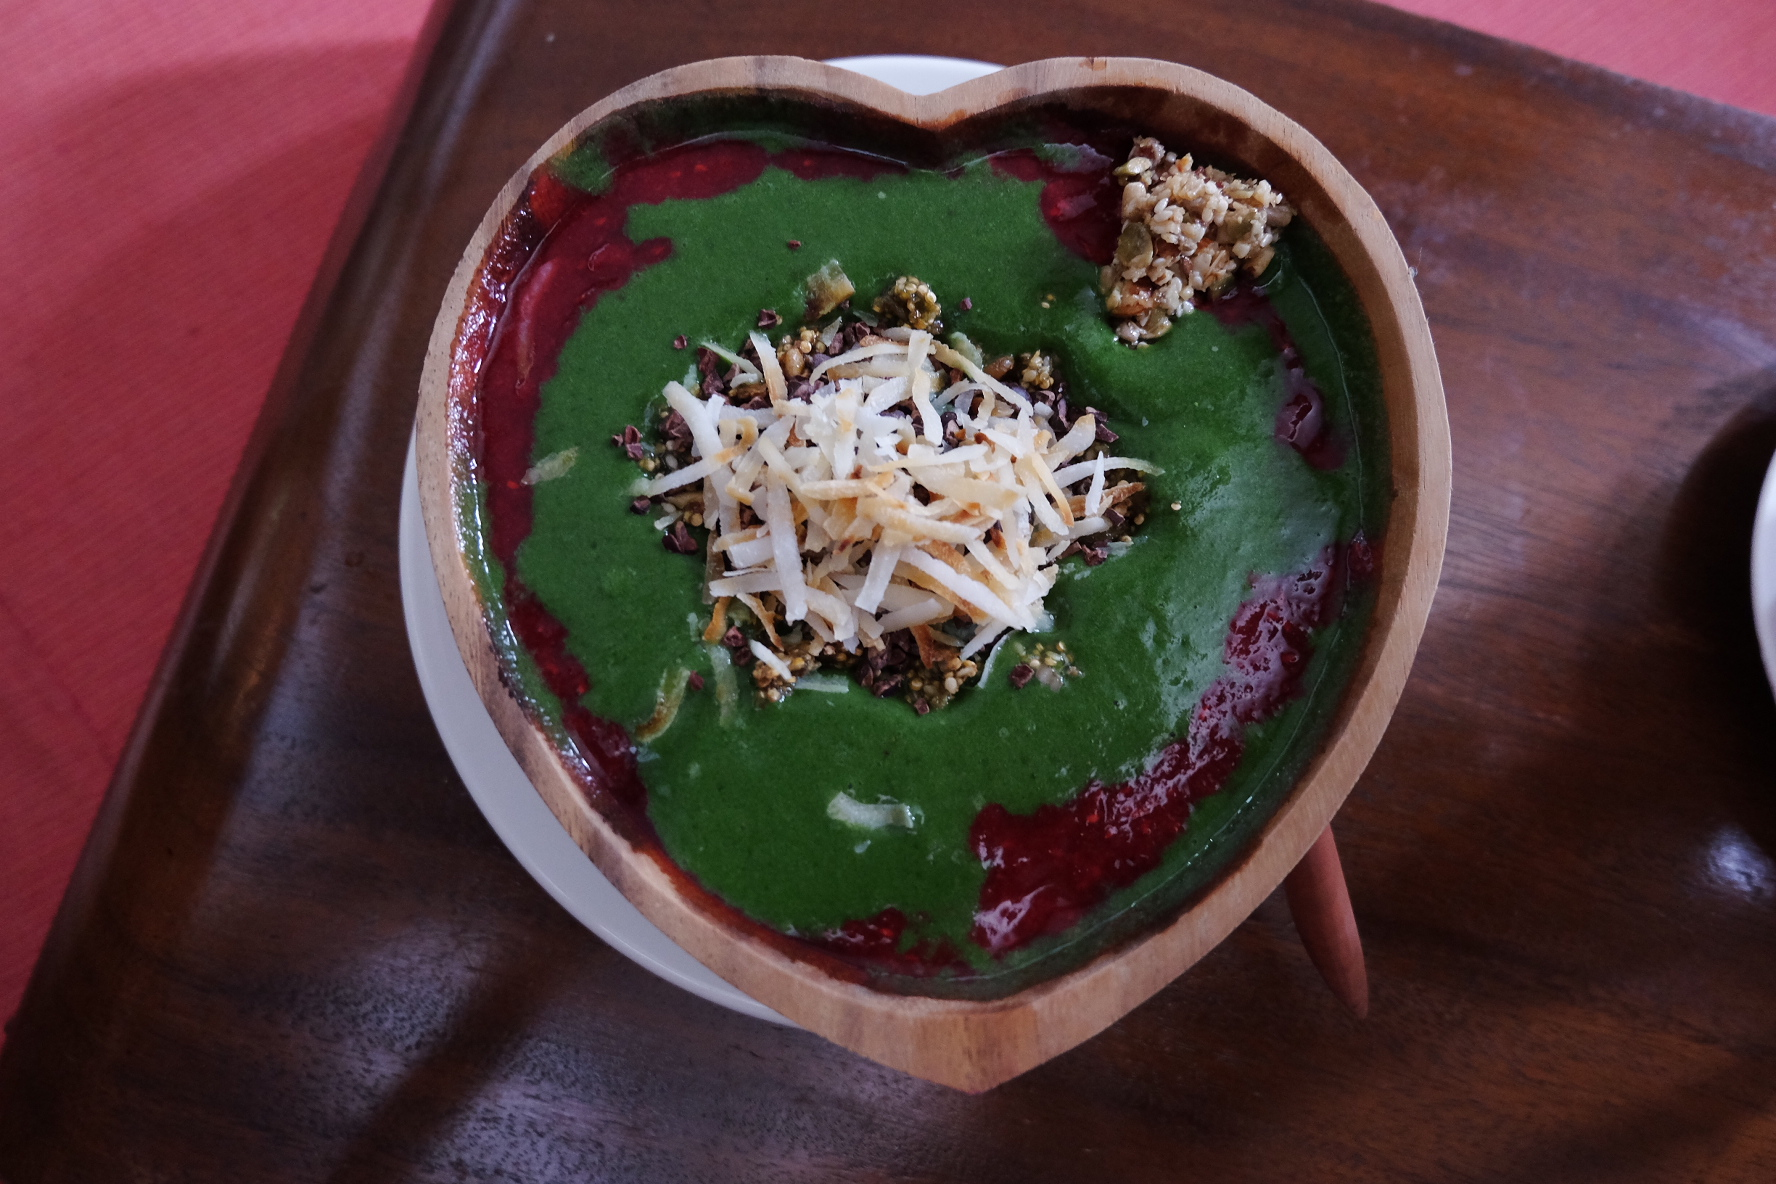 Green bowl at The Seeds of Life in Ubud